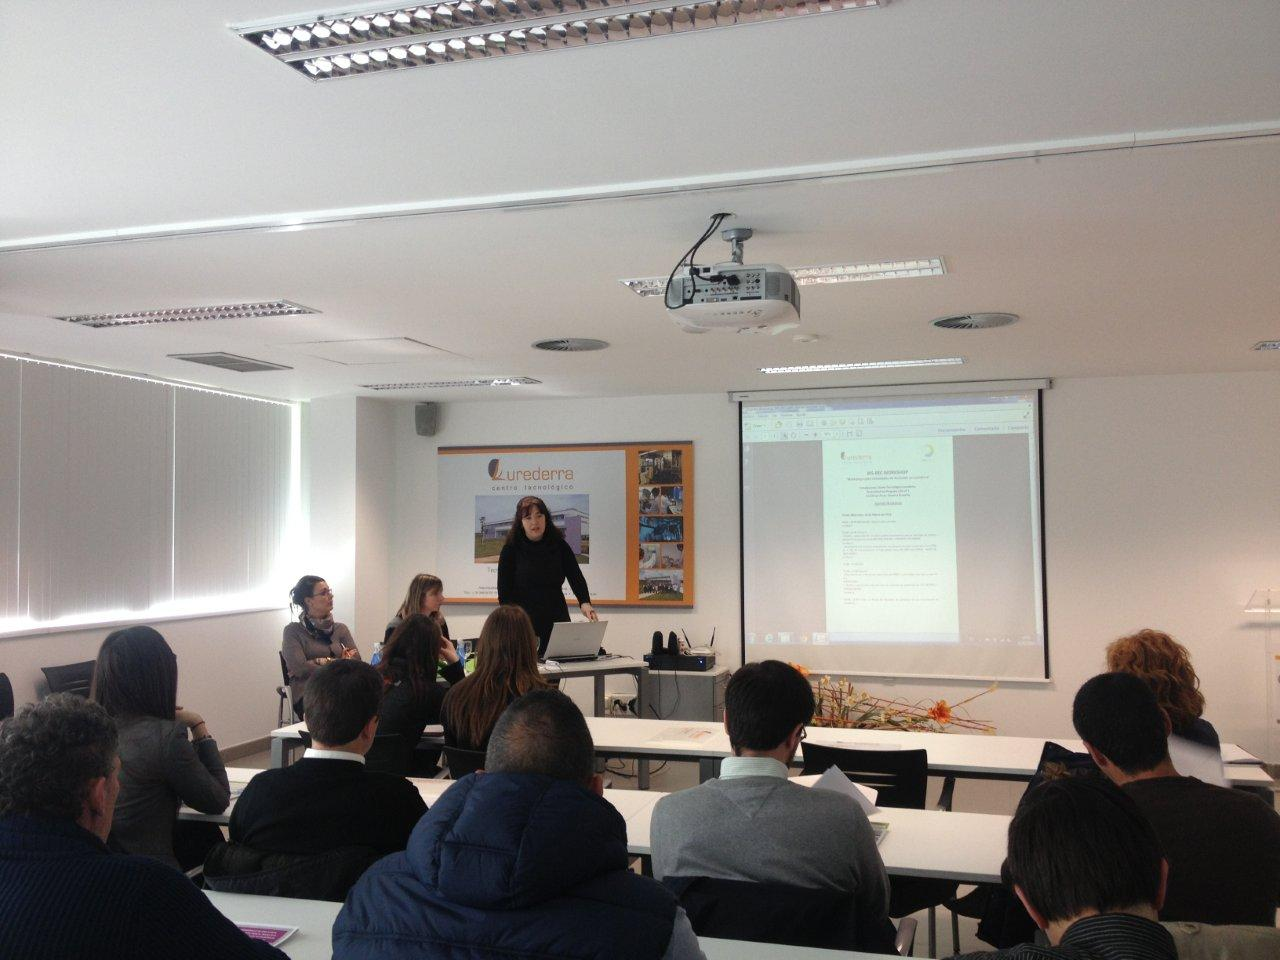 WORKSHOP ON RECYCLING ACTIVITIES IN LUREDERRA 26/03/2014